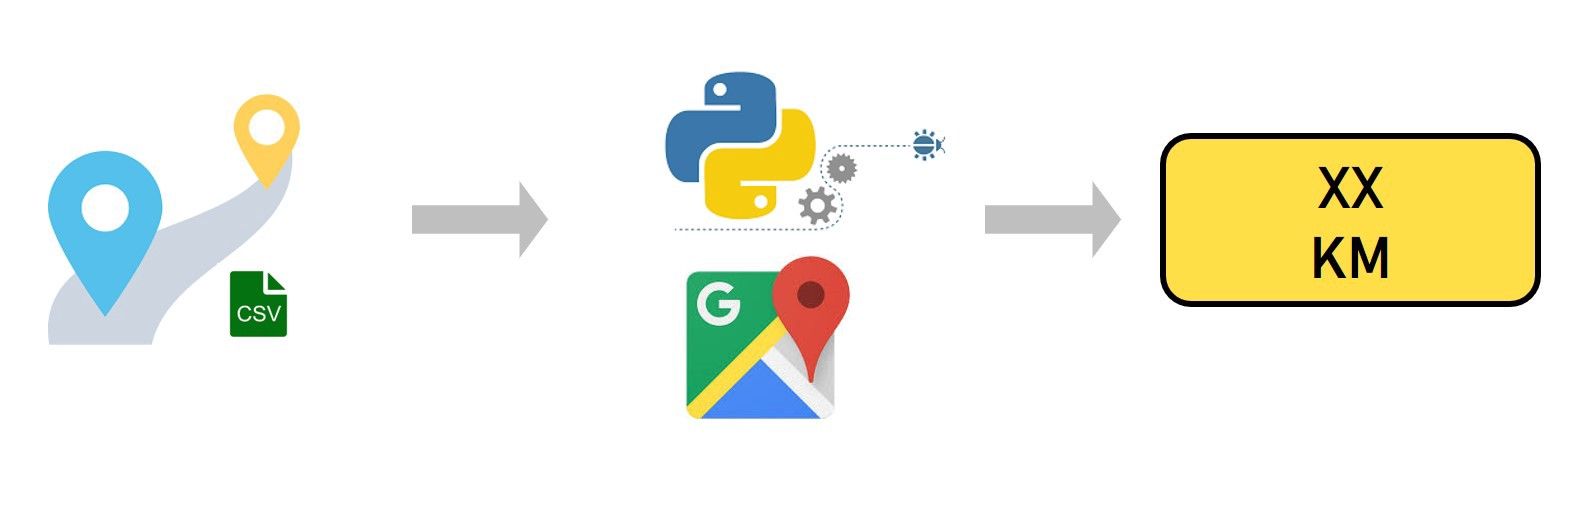 How to use Google Distance Matrix API in Python - How to use Google